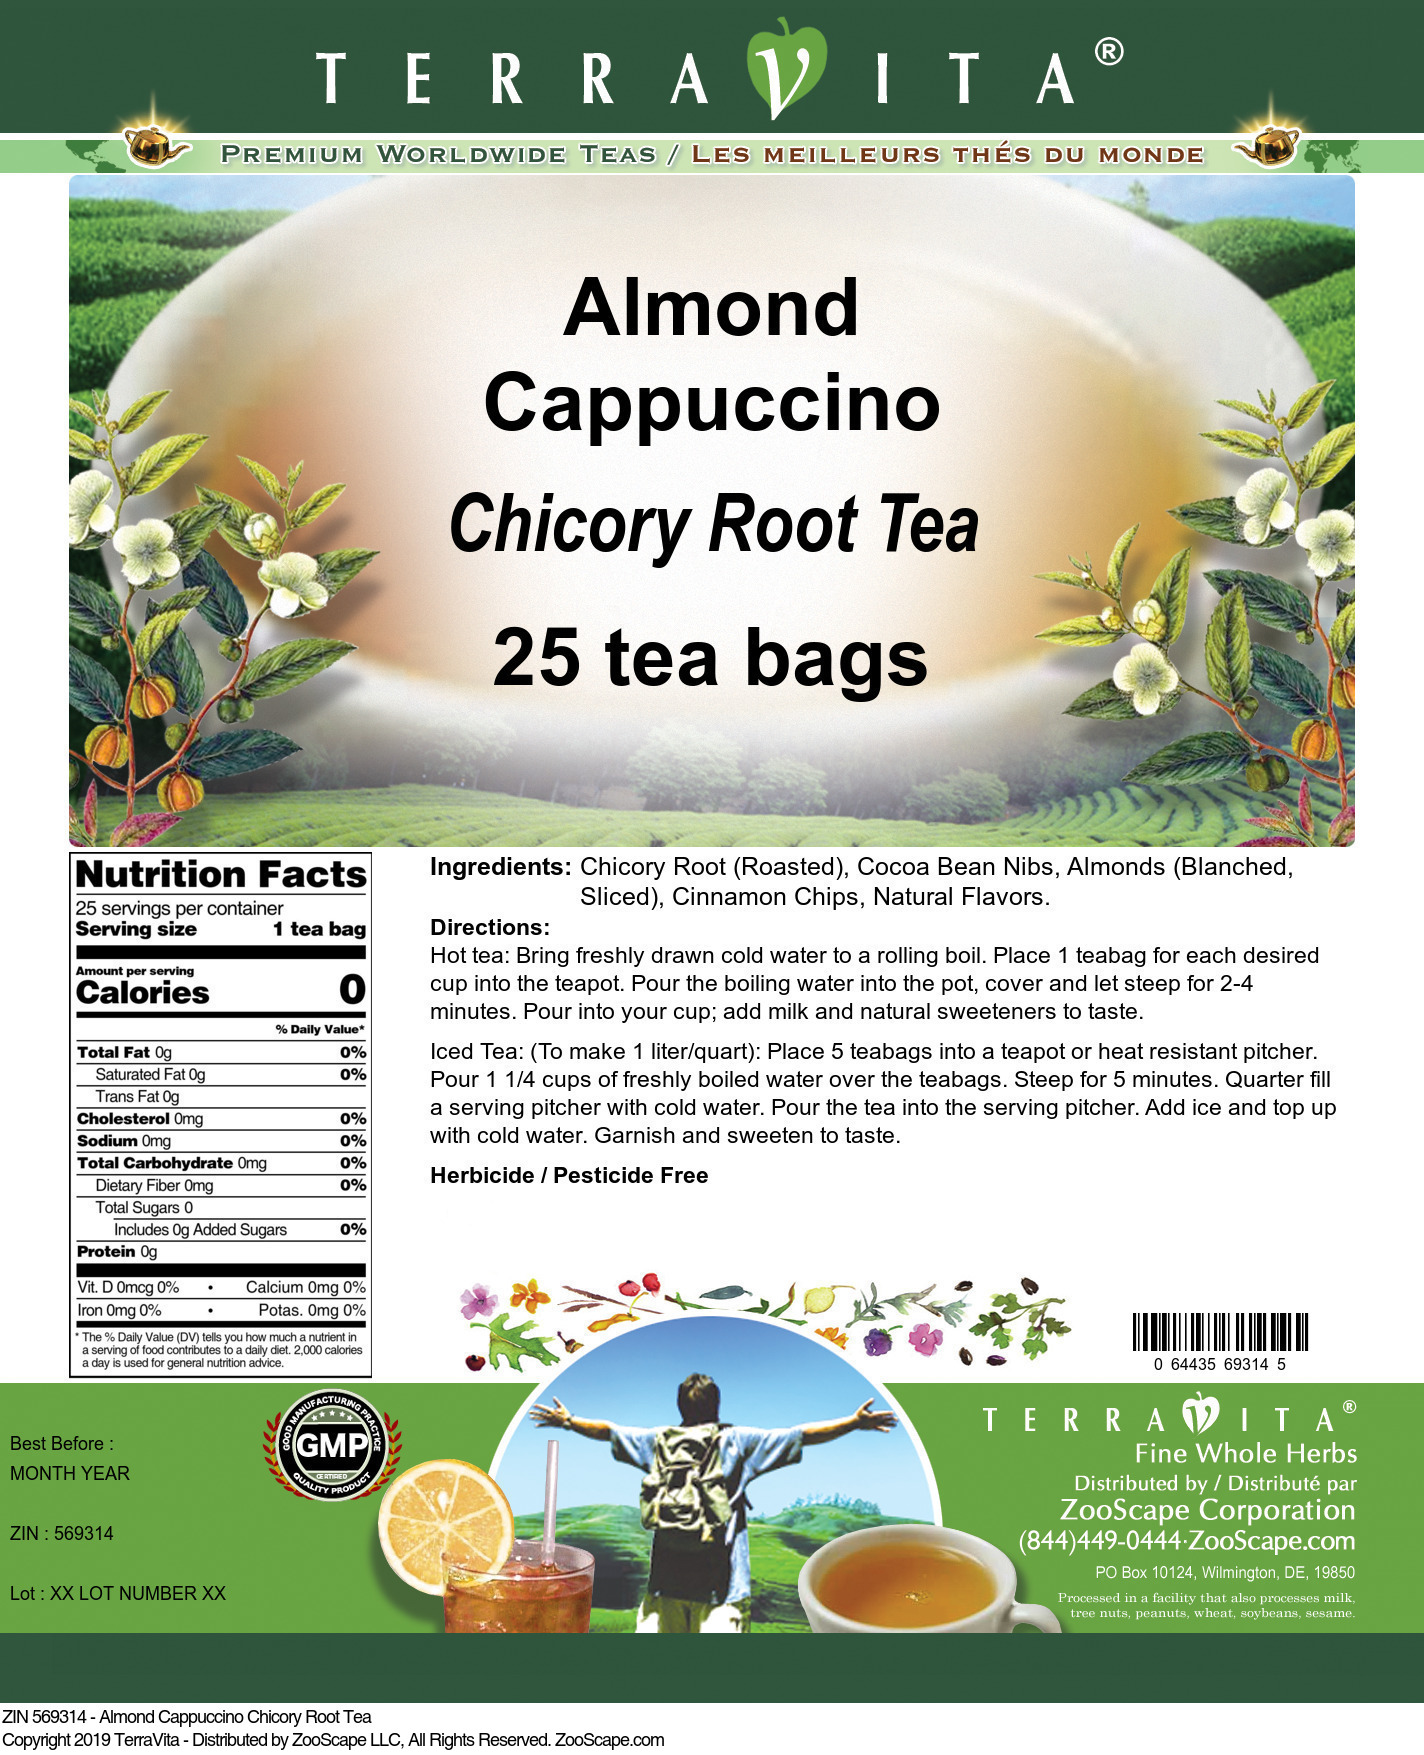 Almond Cappuccino Chicory Root